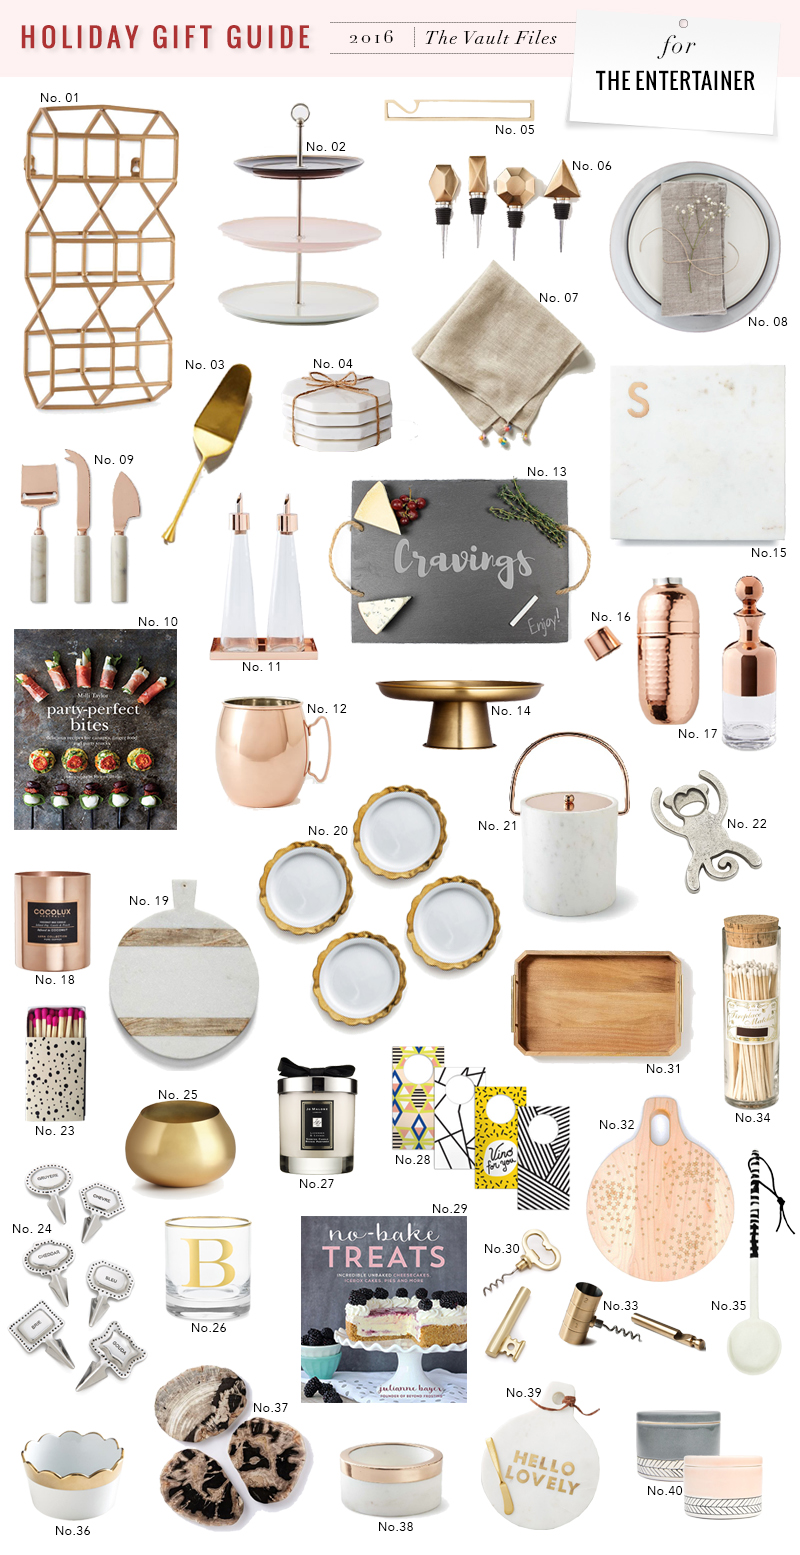 shopping file holiday gift guide for the entertainer the vault rh thevaultfiles com holiday gift ideas blog holiday gift guide bloggers